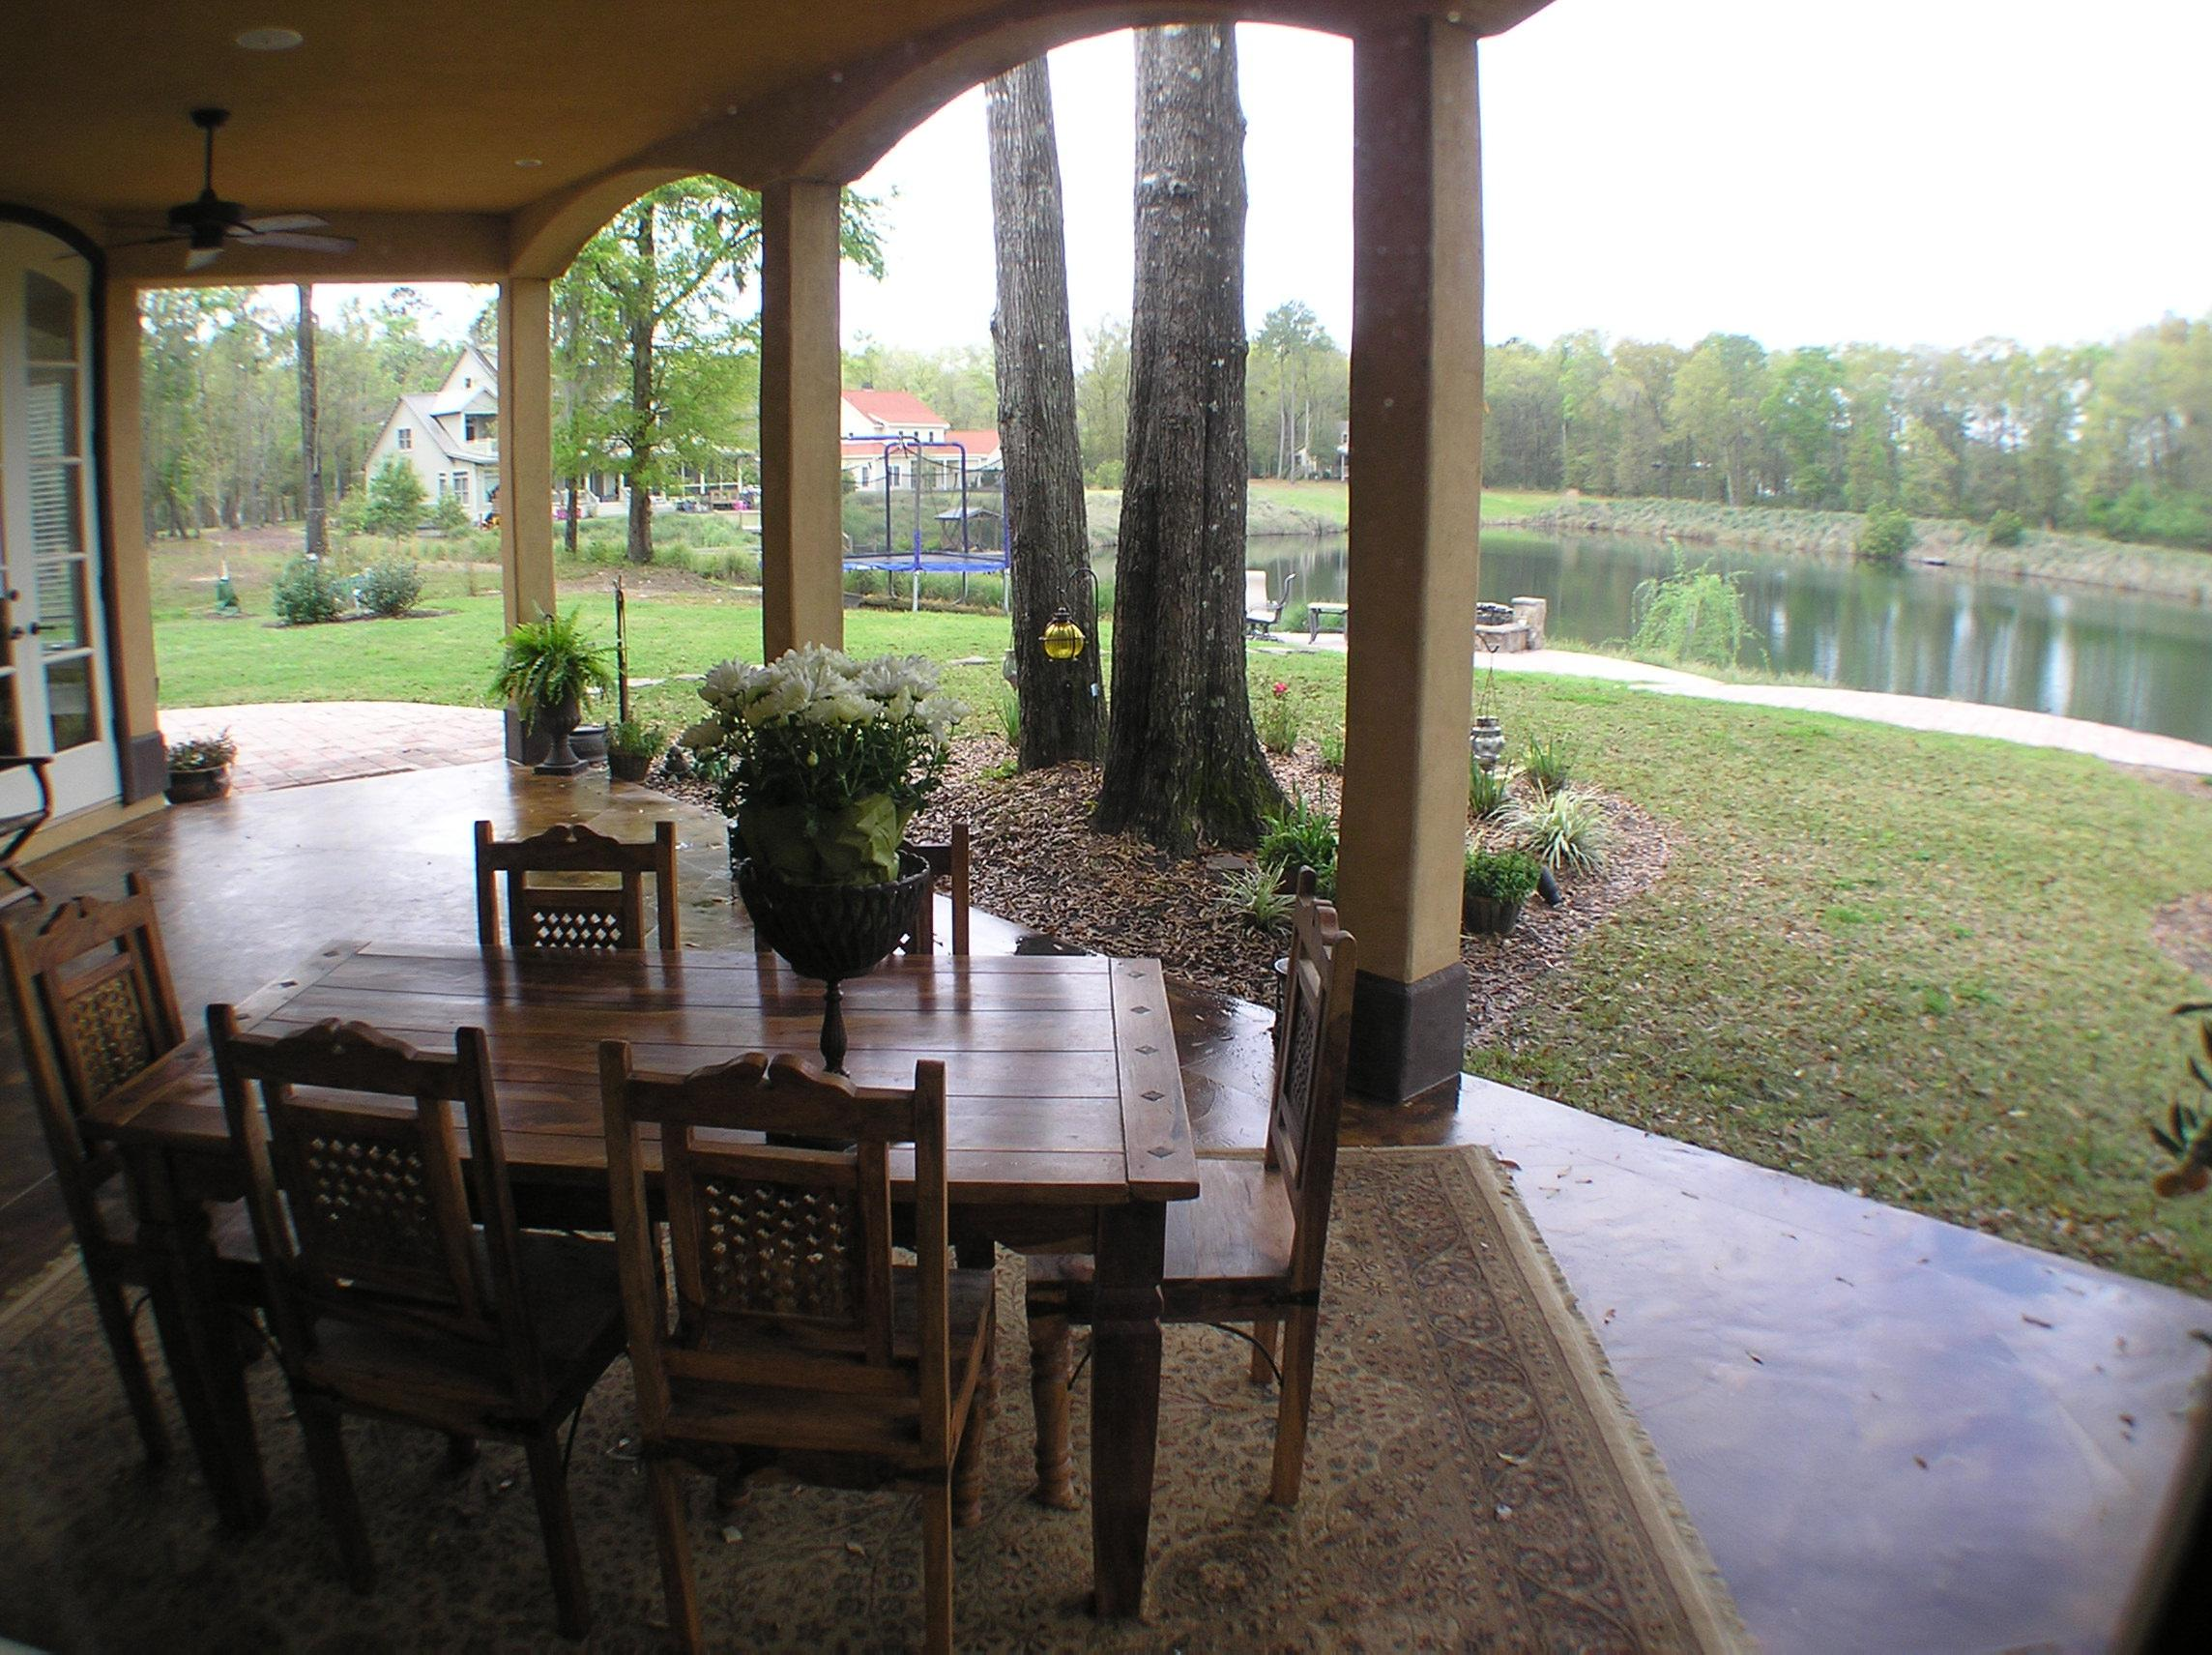 The outdoor living center